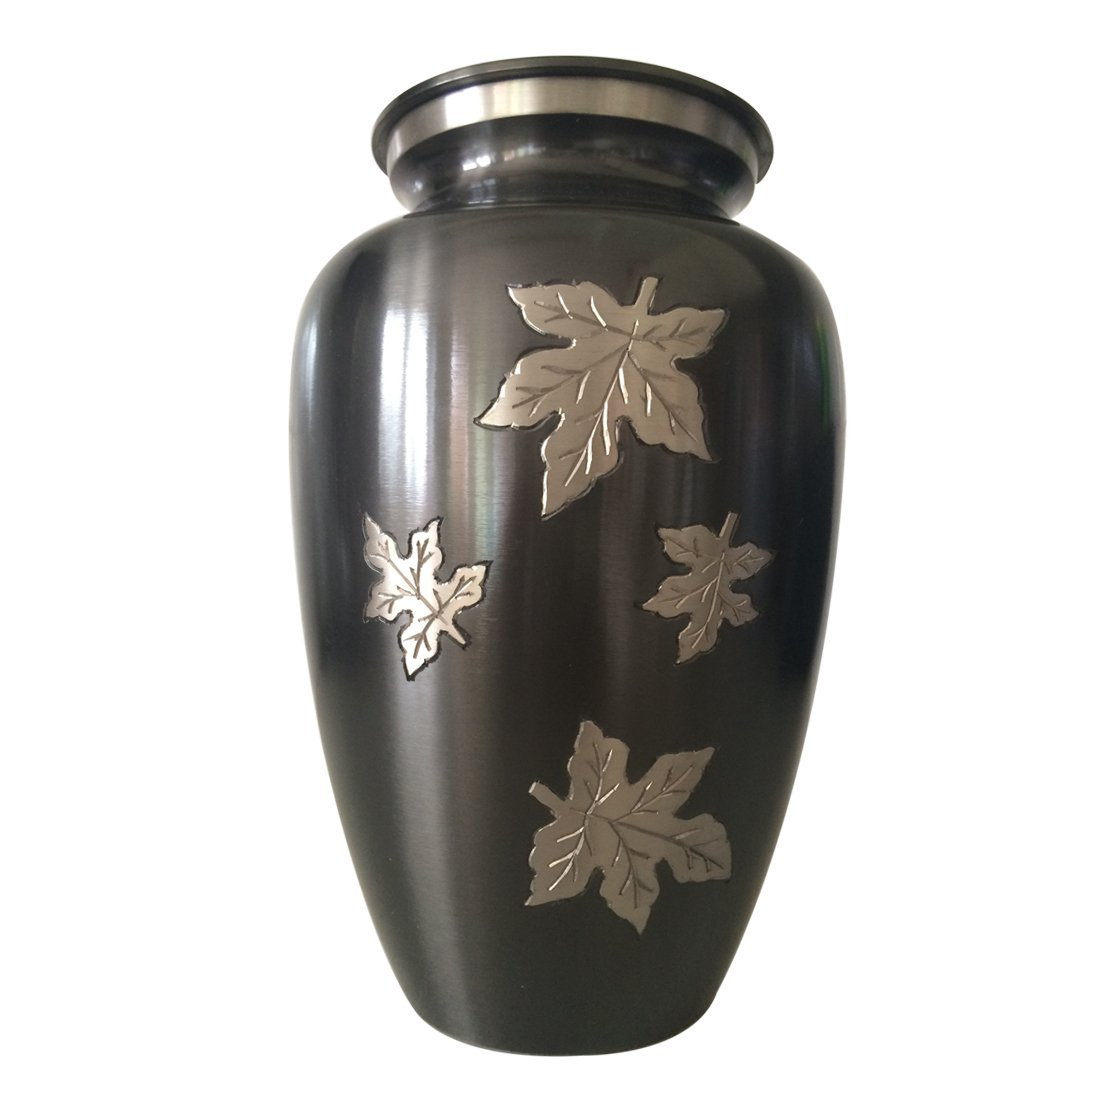 Funeral Cremation Urn with Classic Falling Leaves